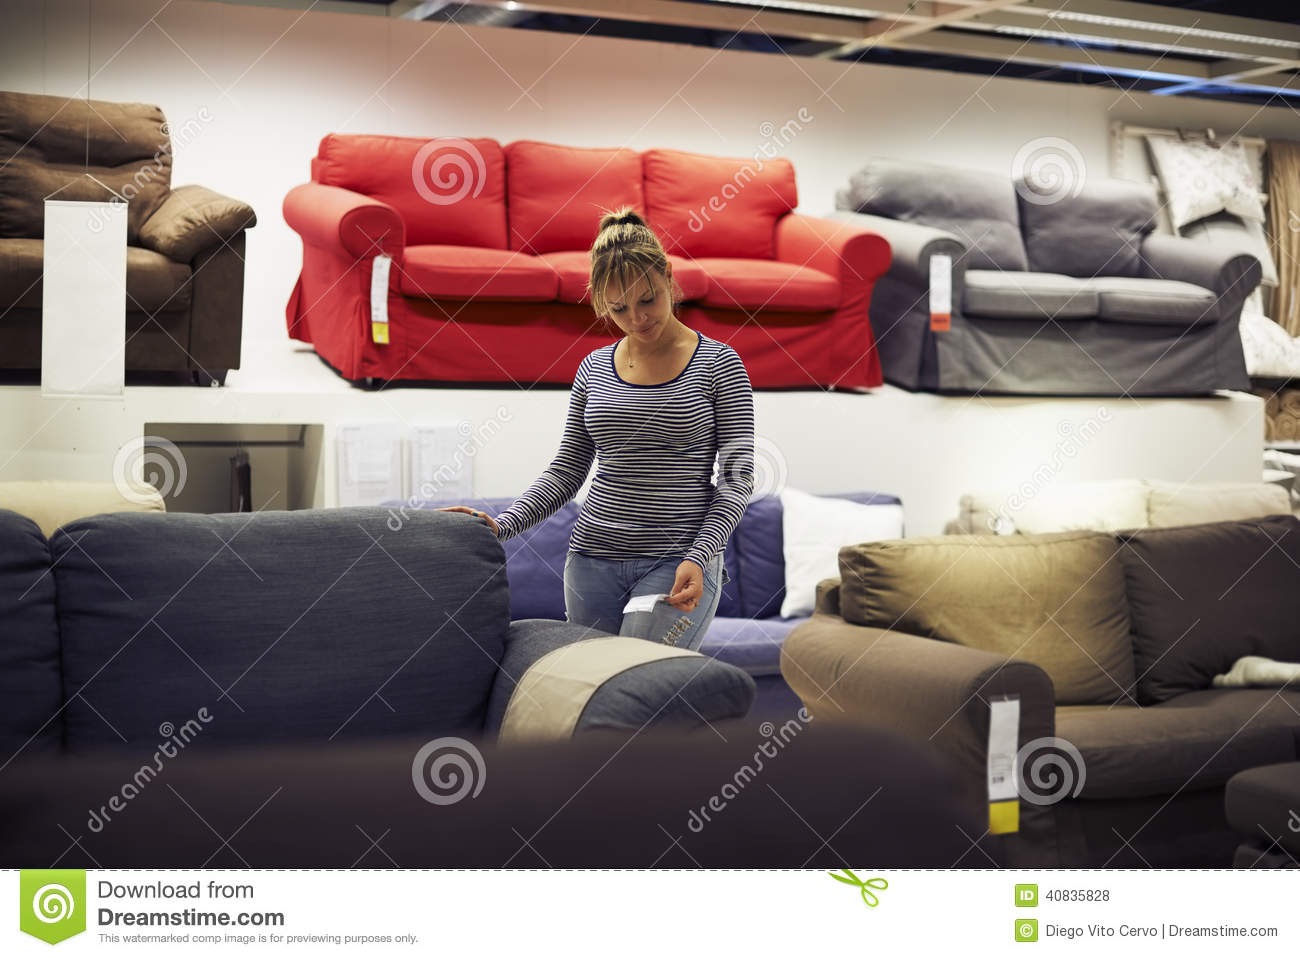 Woman Shopping For Furniture And Home Decor Stock Photo Image 40835828